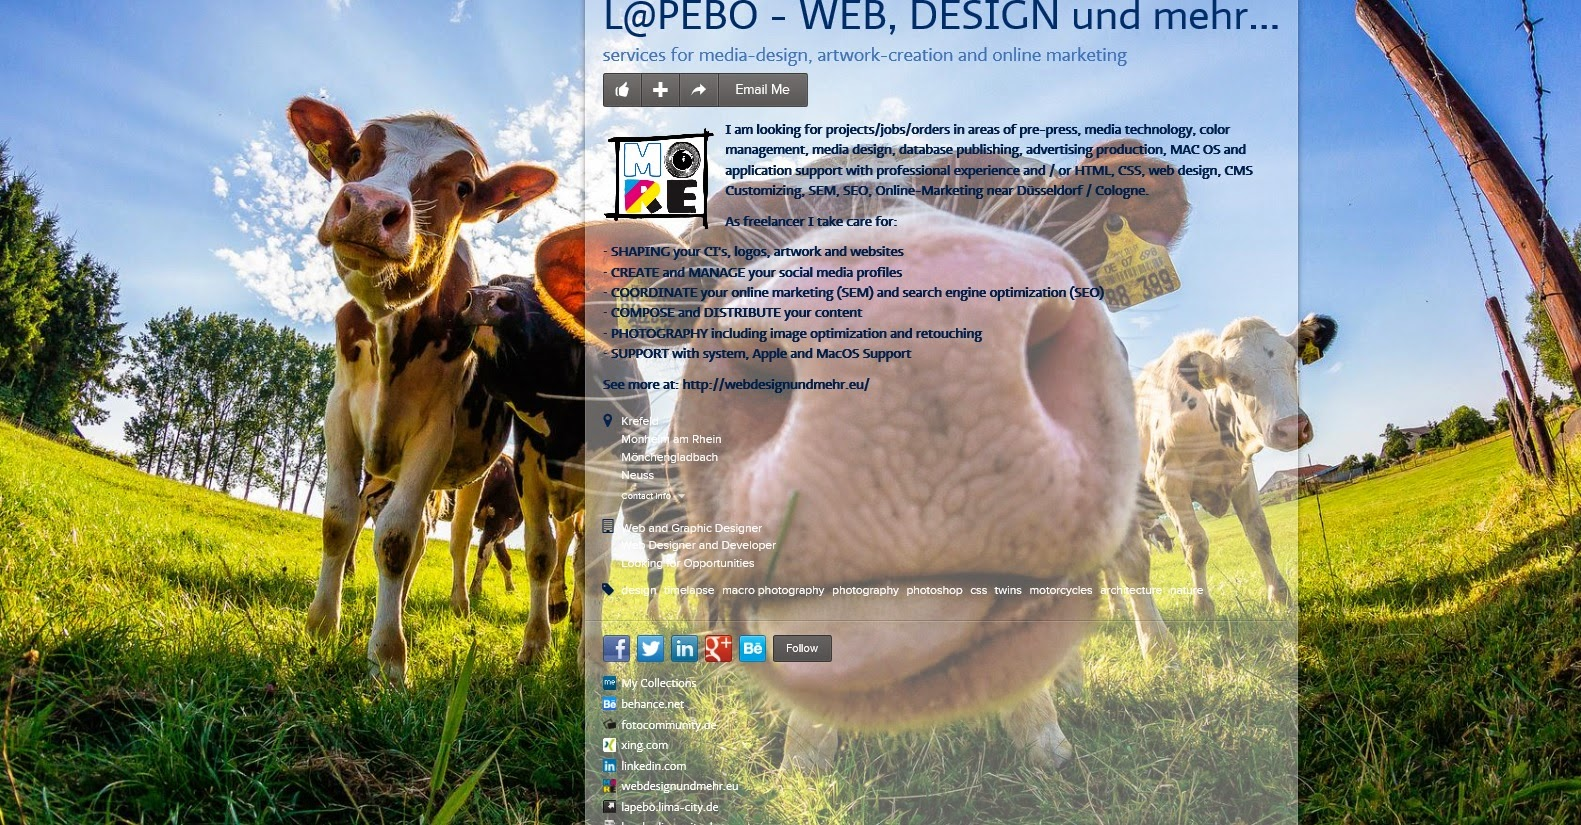 An image of L@PEBO's (Lars-Peter Boehme's), Website Designer about.me page